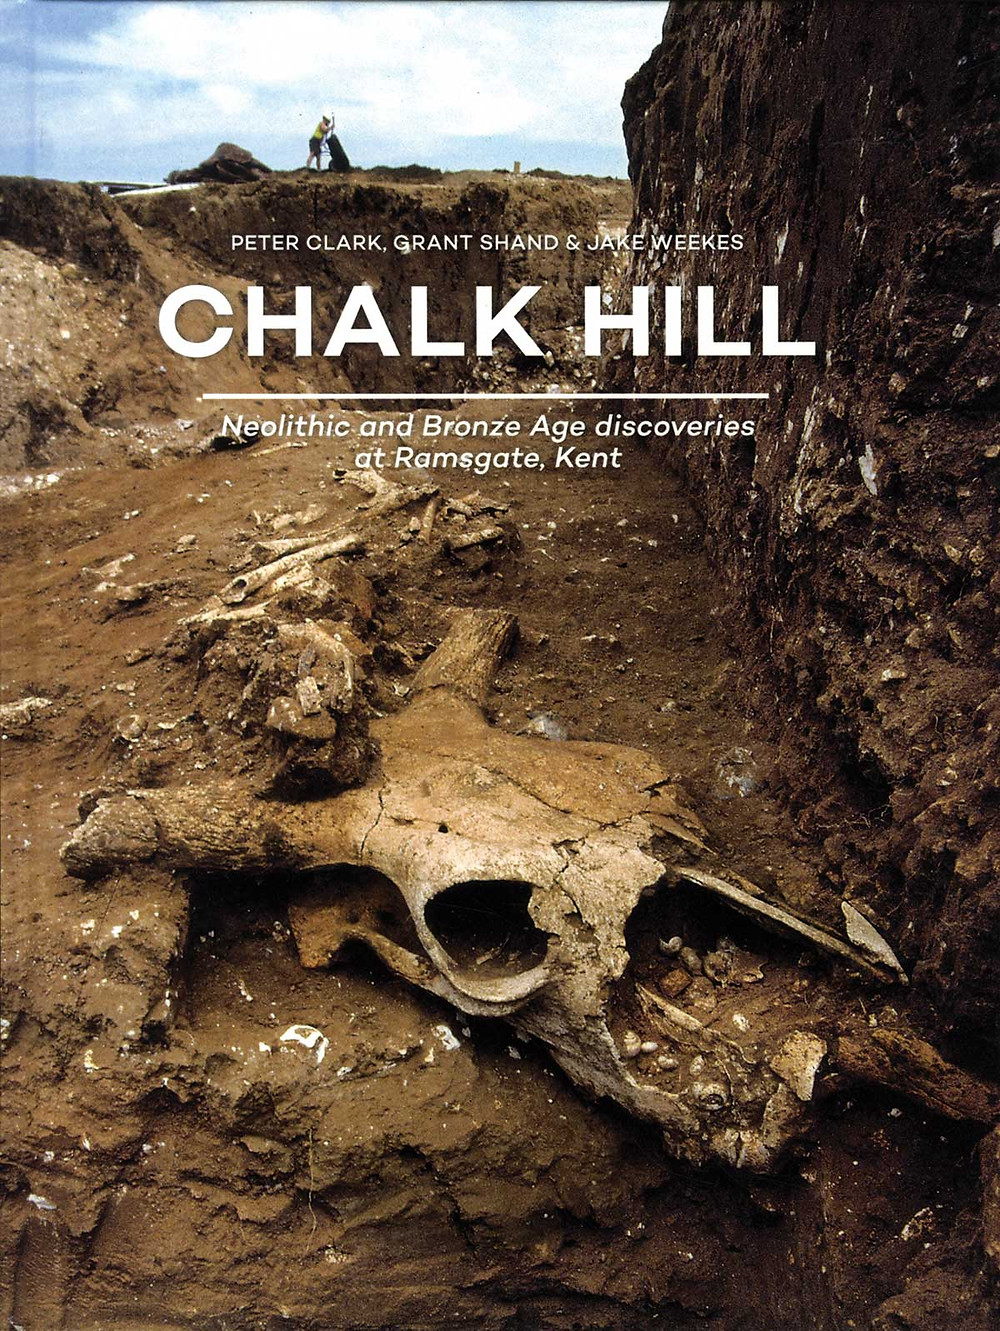 Chalk Hill: Neolithic and Bronze Age discoveries at Ramsgate, Kent